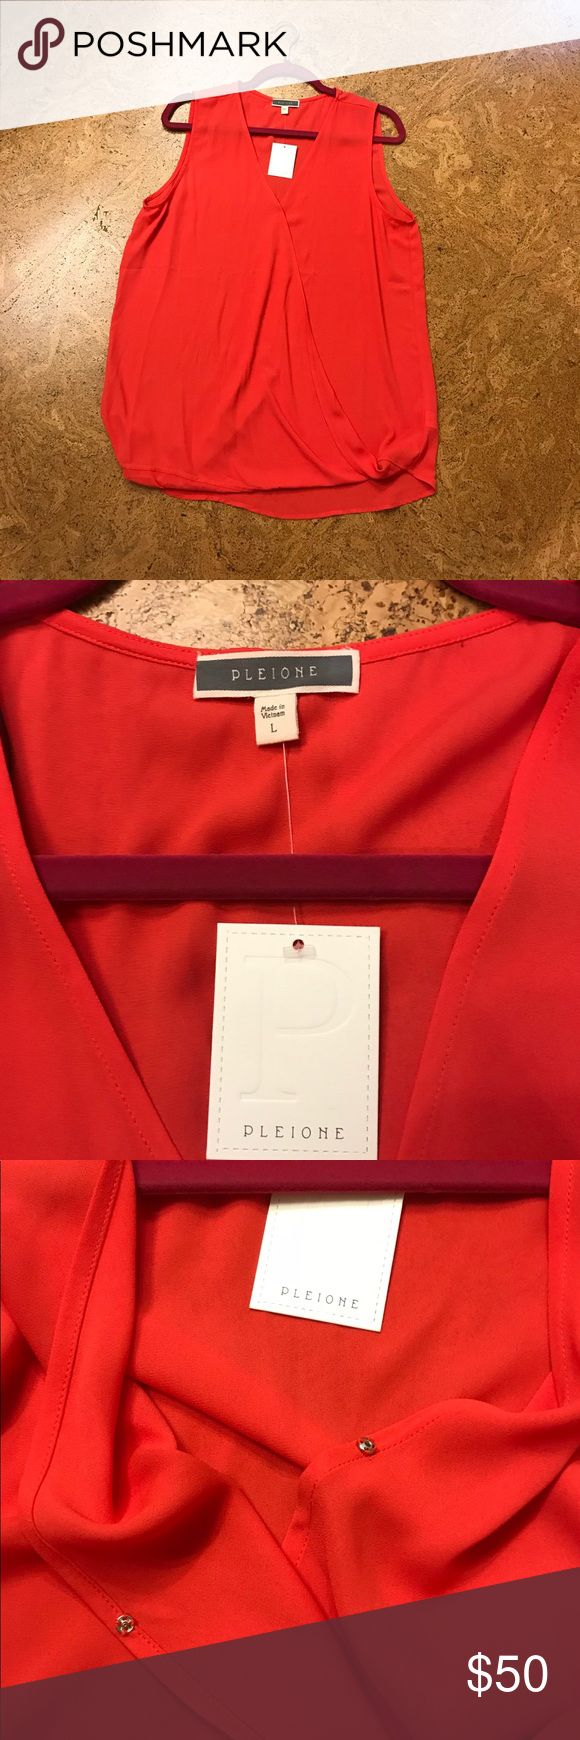 NWT Pleione Blouse Size L Beautiful coral color purchased at Nordstrom's The Rack. It's very flowy and loops at the bottom. One snap as pictured above to keep it closed. I also included a picture of where there is a spot at that snap I believe from me trying it on with pressed powder. Should come out no problem in the wash I didn't want to take the tags off of it. Feel free to ask me any questions or make an offer. Pleione Tops